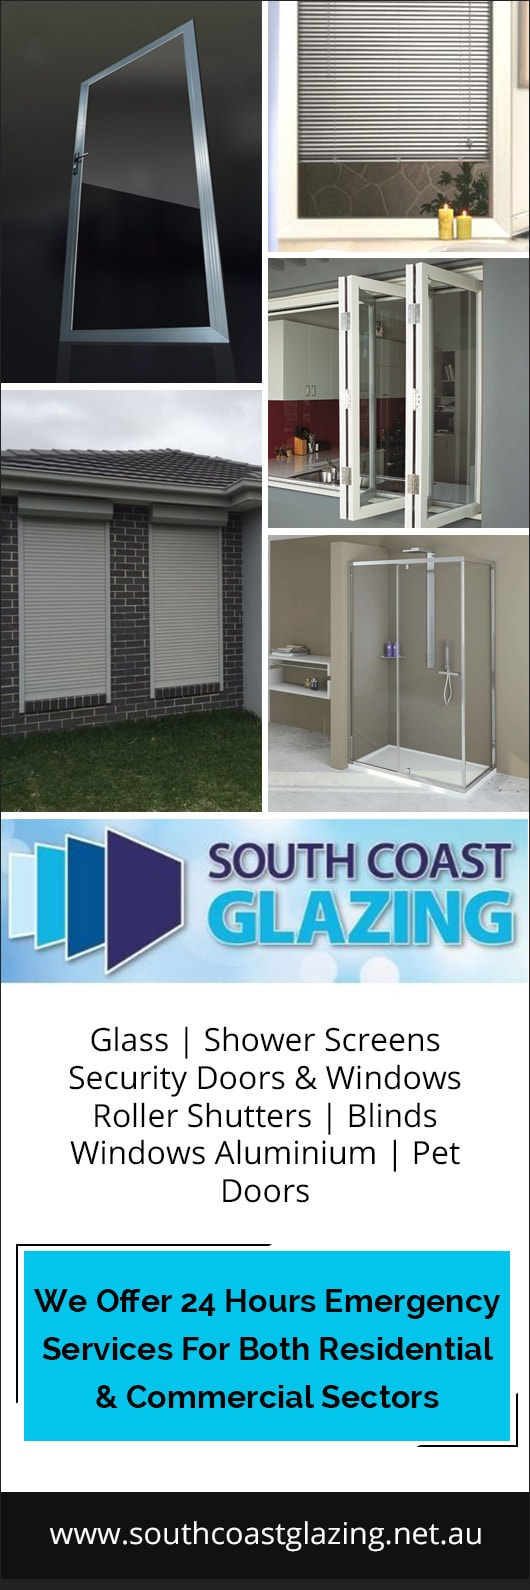 Residential windows commercial windows marine windows products - Products And Services